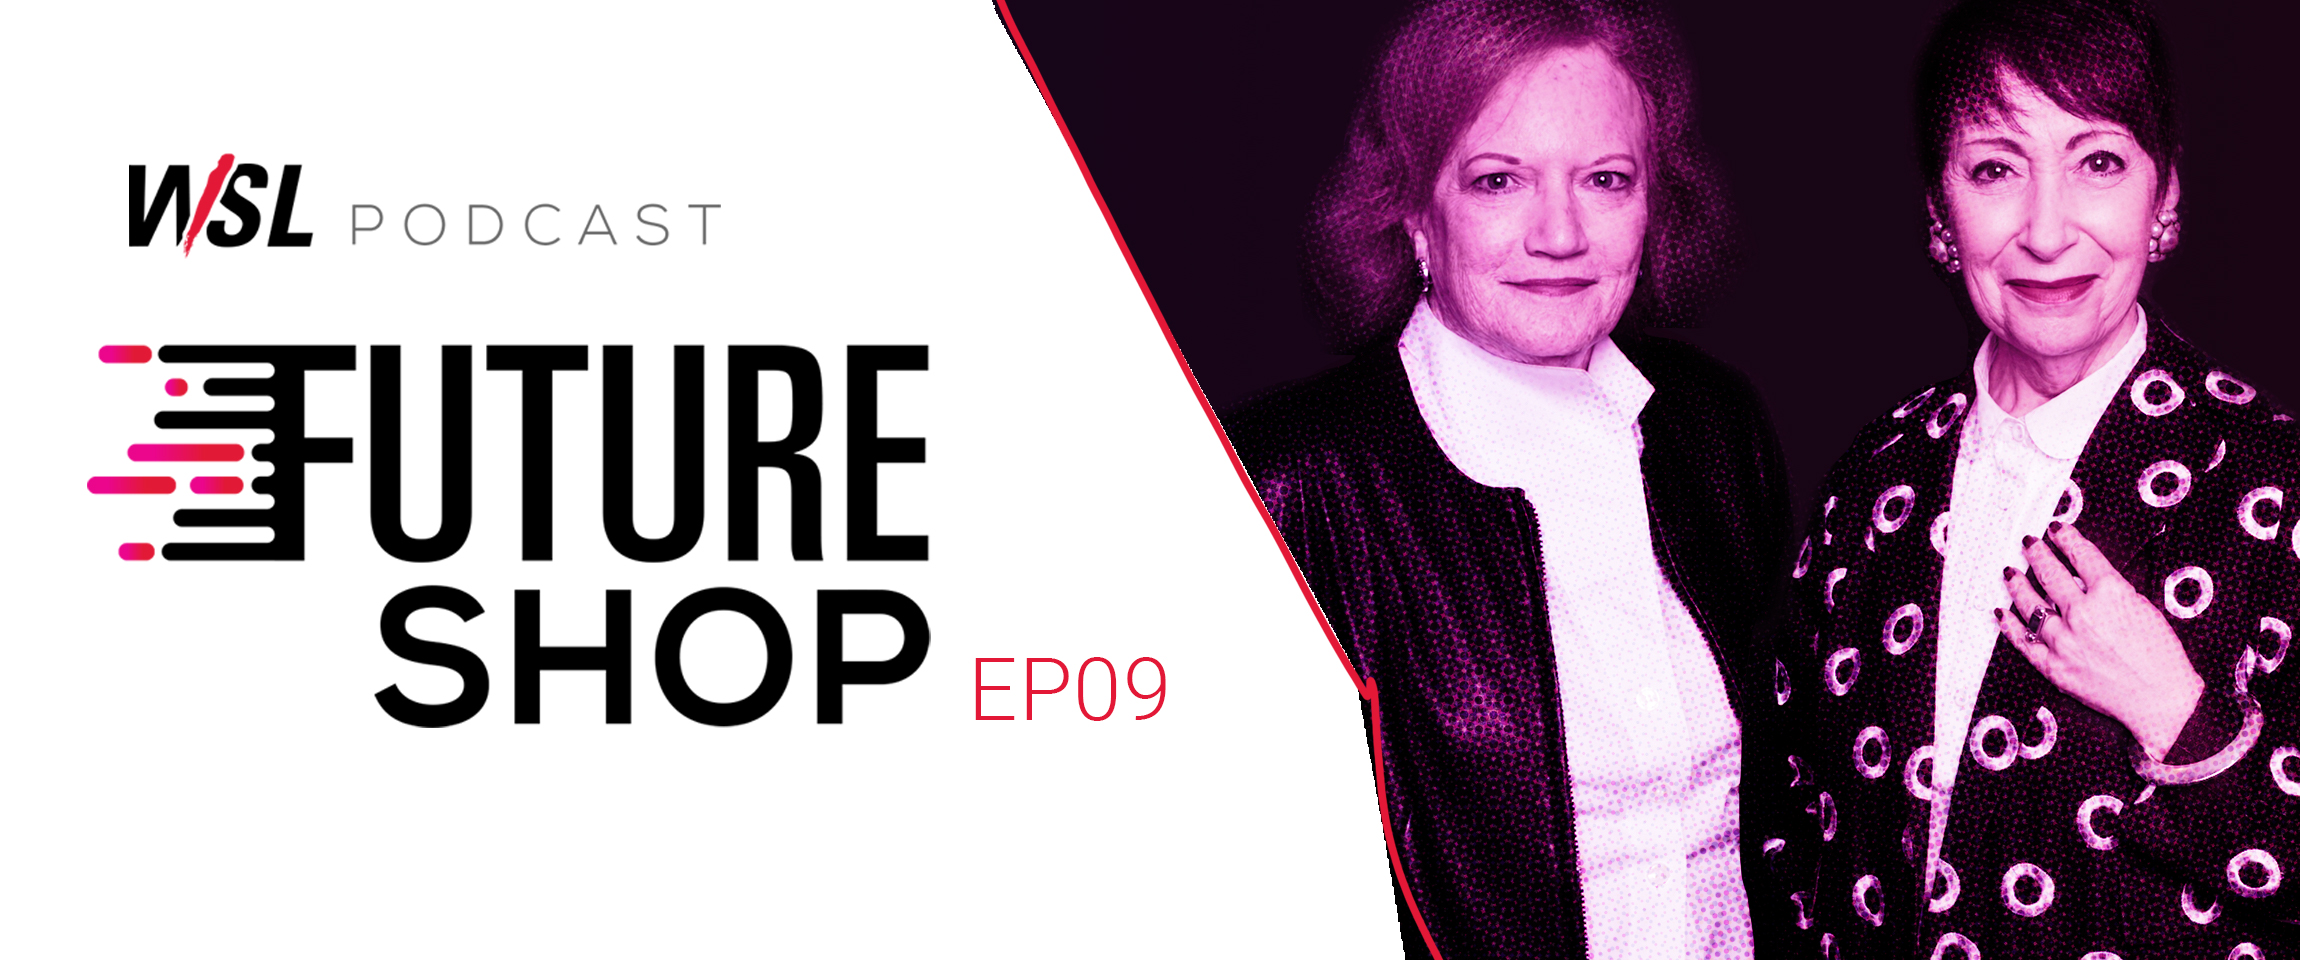 The Great Retail Restructuring Begins  - Future Shop Podcast EP09